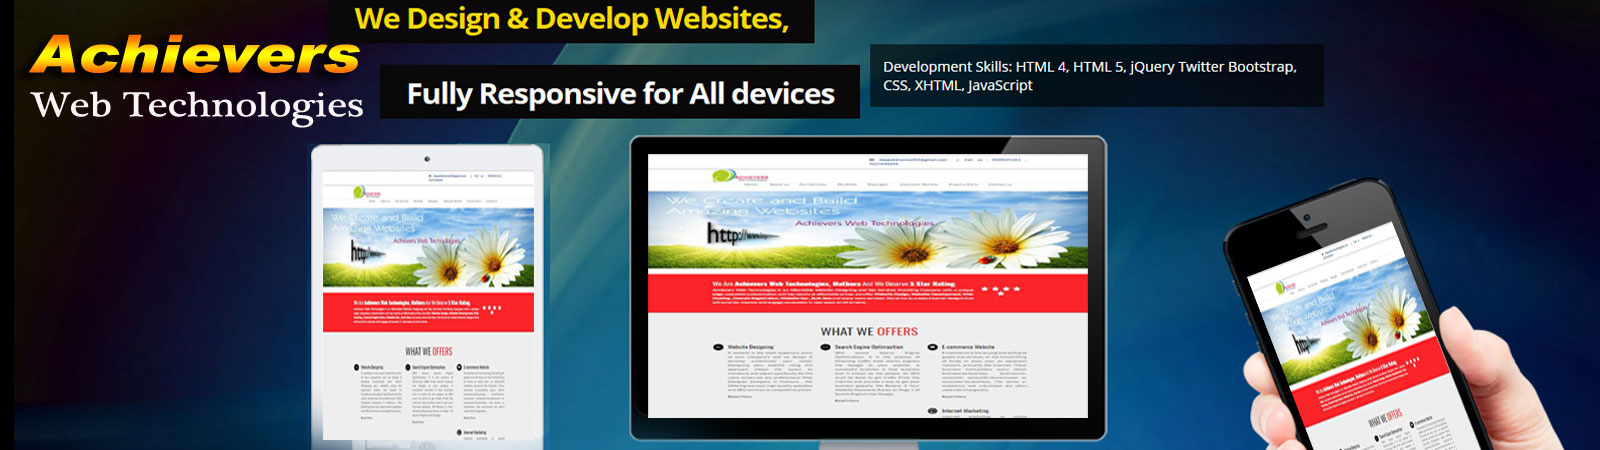 WEBSITE DESIGNING IN MATHURA,BEST WEBSITE COMPANY IN MATHURA,BEST WEBSITE DESIGN IN VRINDAVAN,WEBSITE DEVELOPMENT IN MATHURA,SOFTWARE DEVELOPMENT IN MATHURA,WEBSITE DEVELOPMENT IN VRINDAVAN,IT TRANING IN MATHURA,SEO IN MATHURA